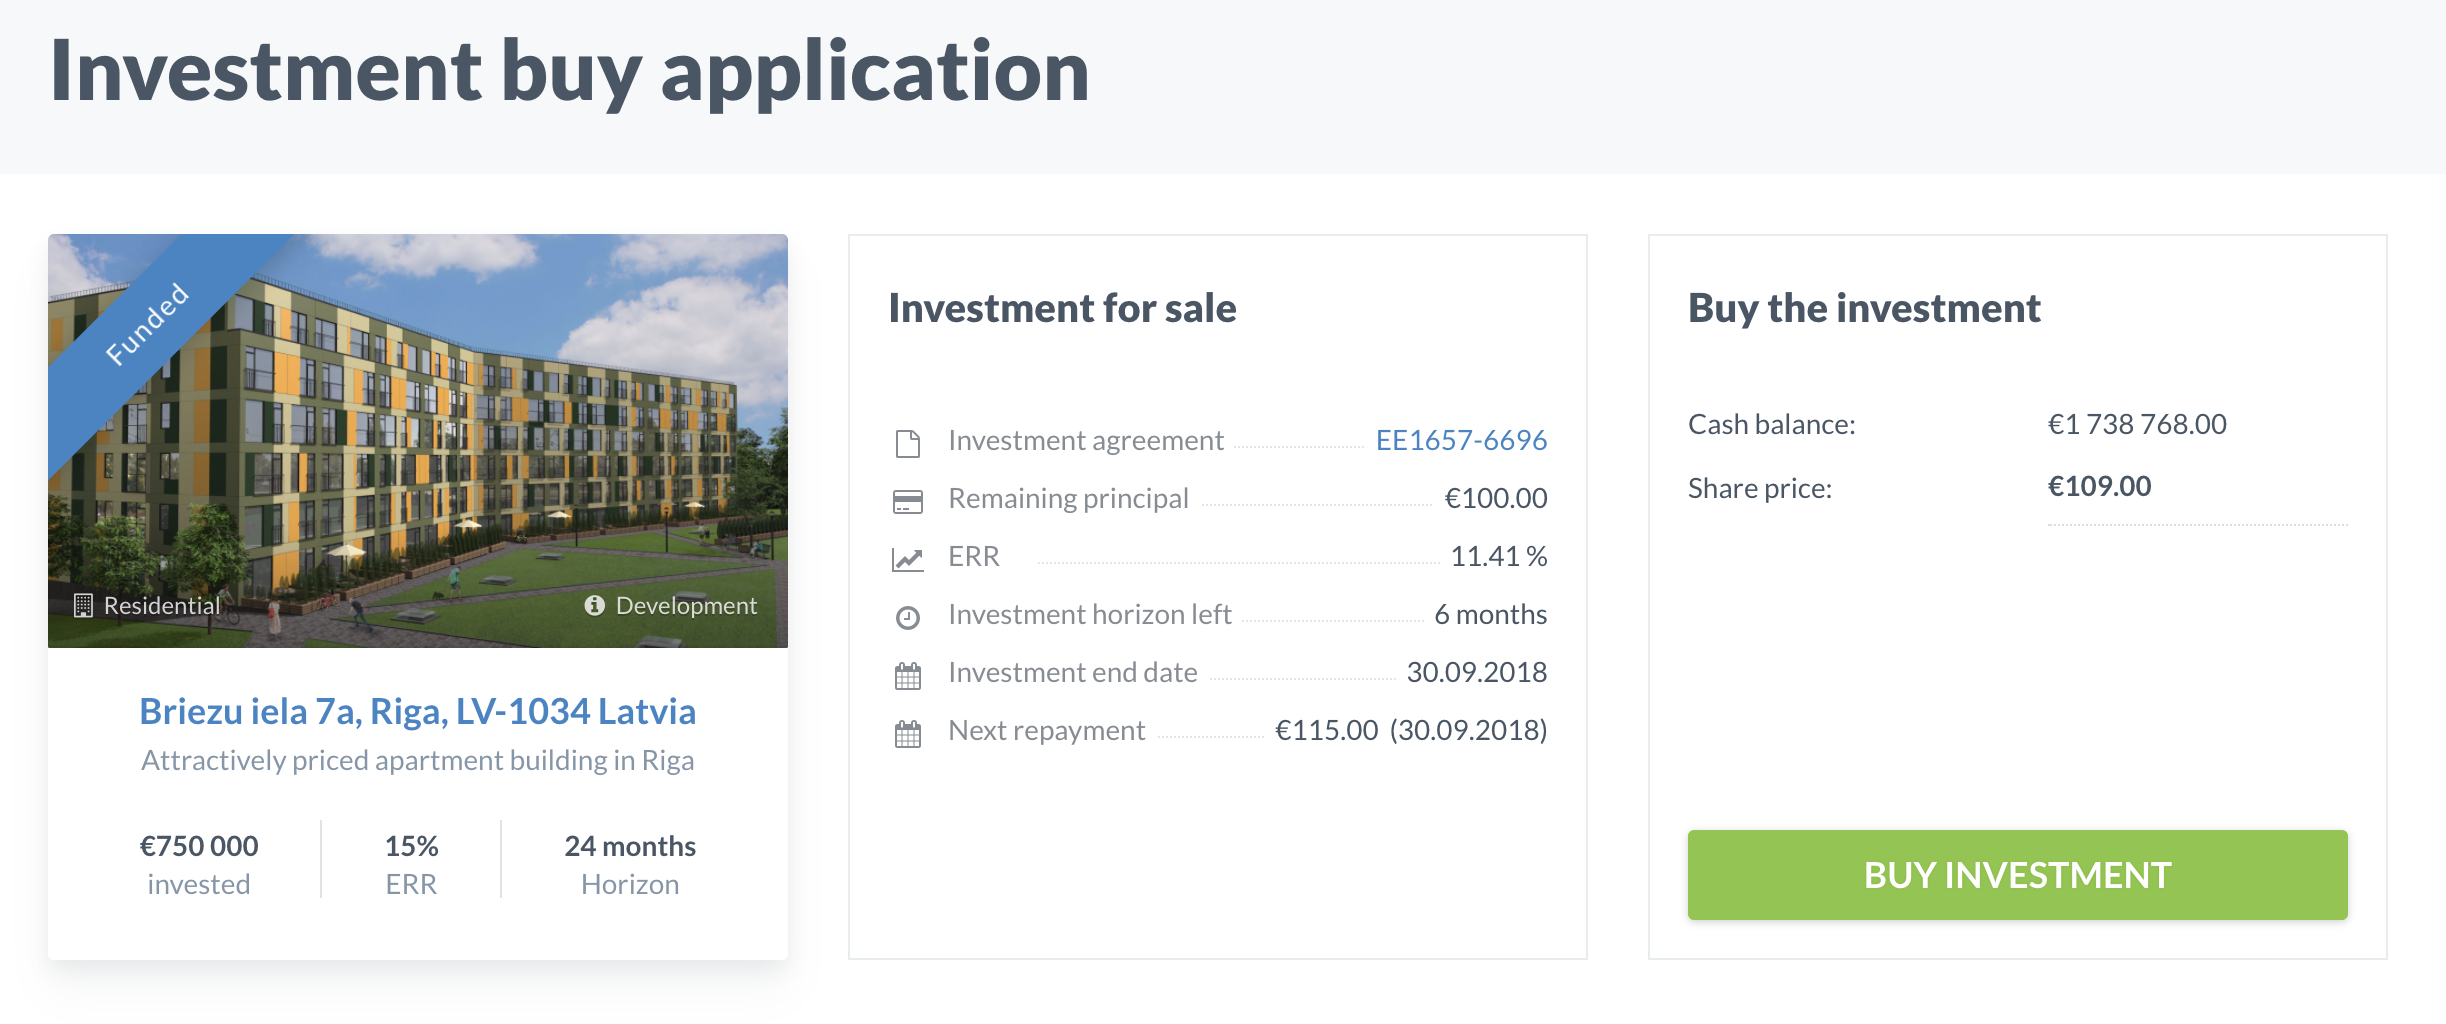 investment-buy-application